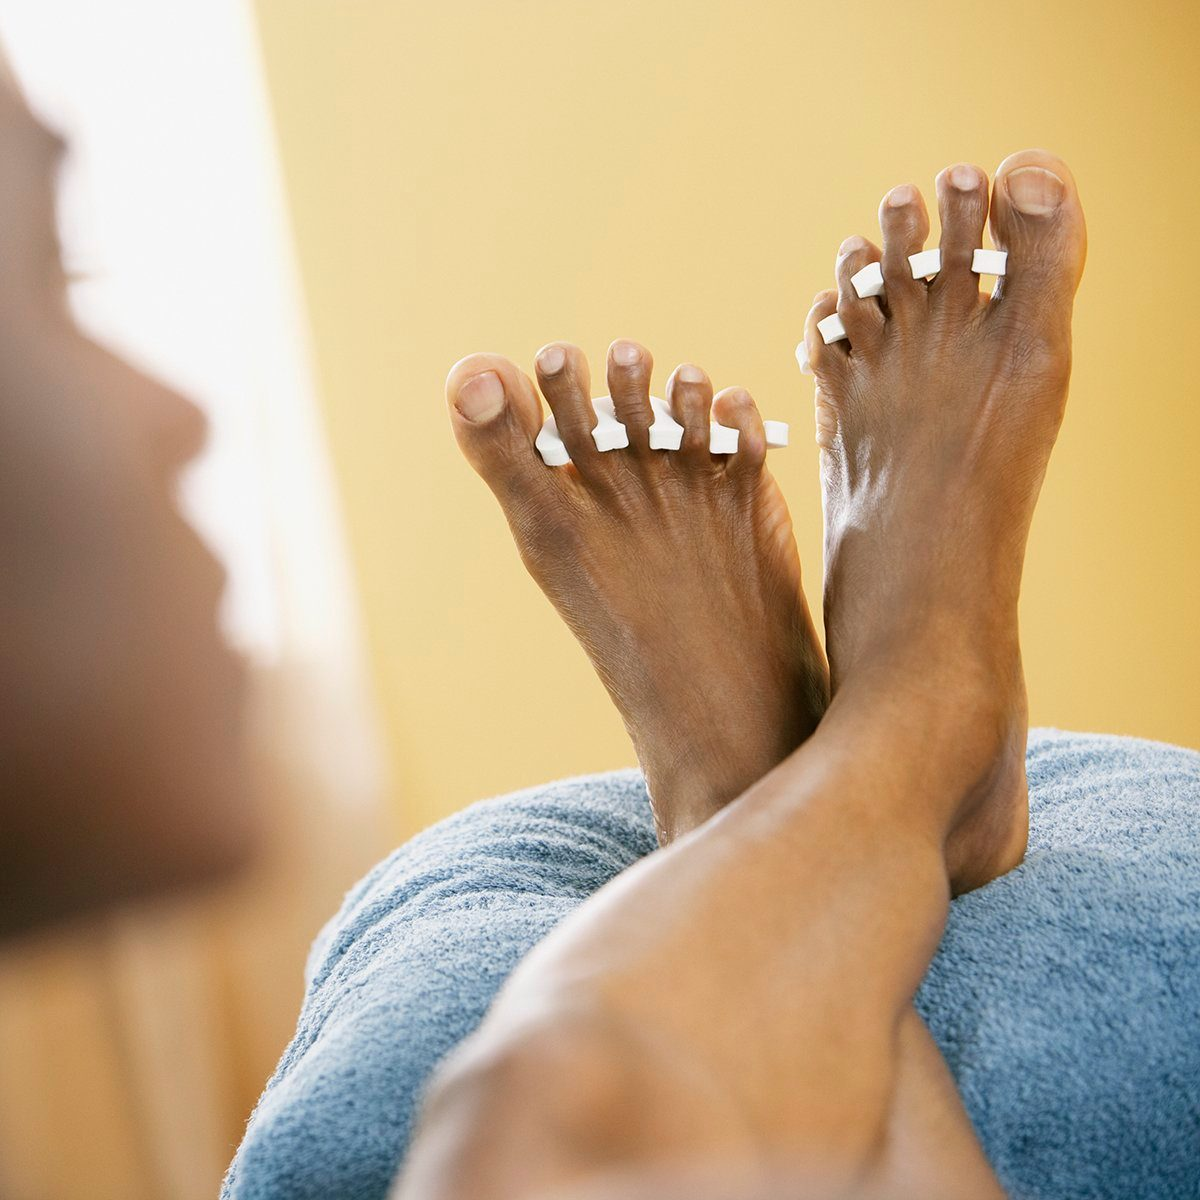 African man getting pedicure